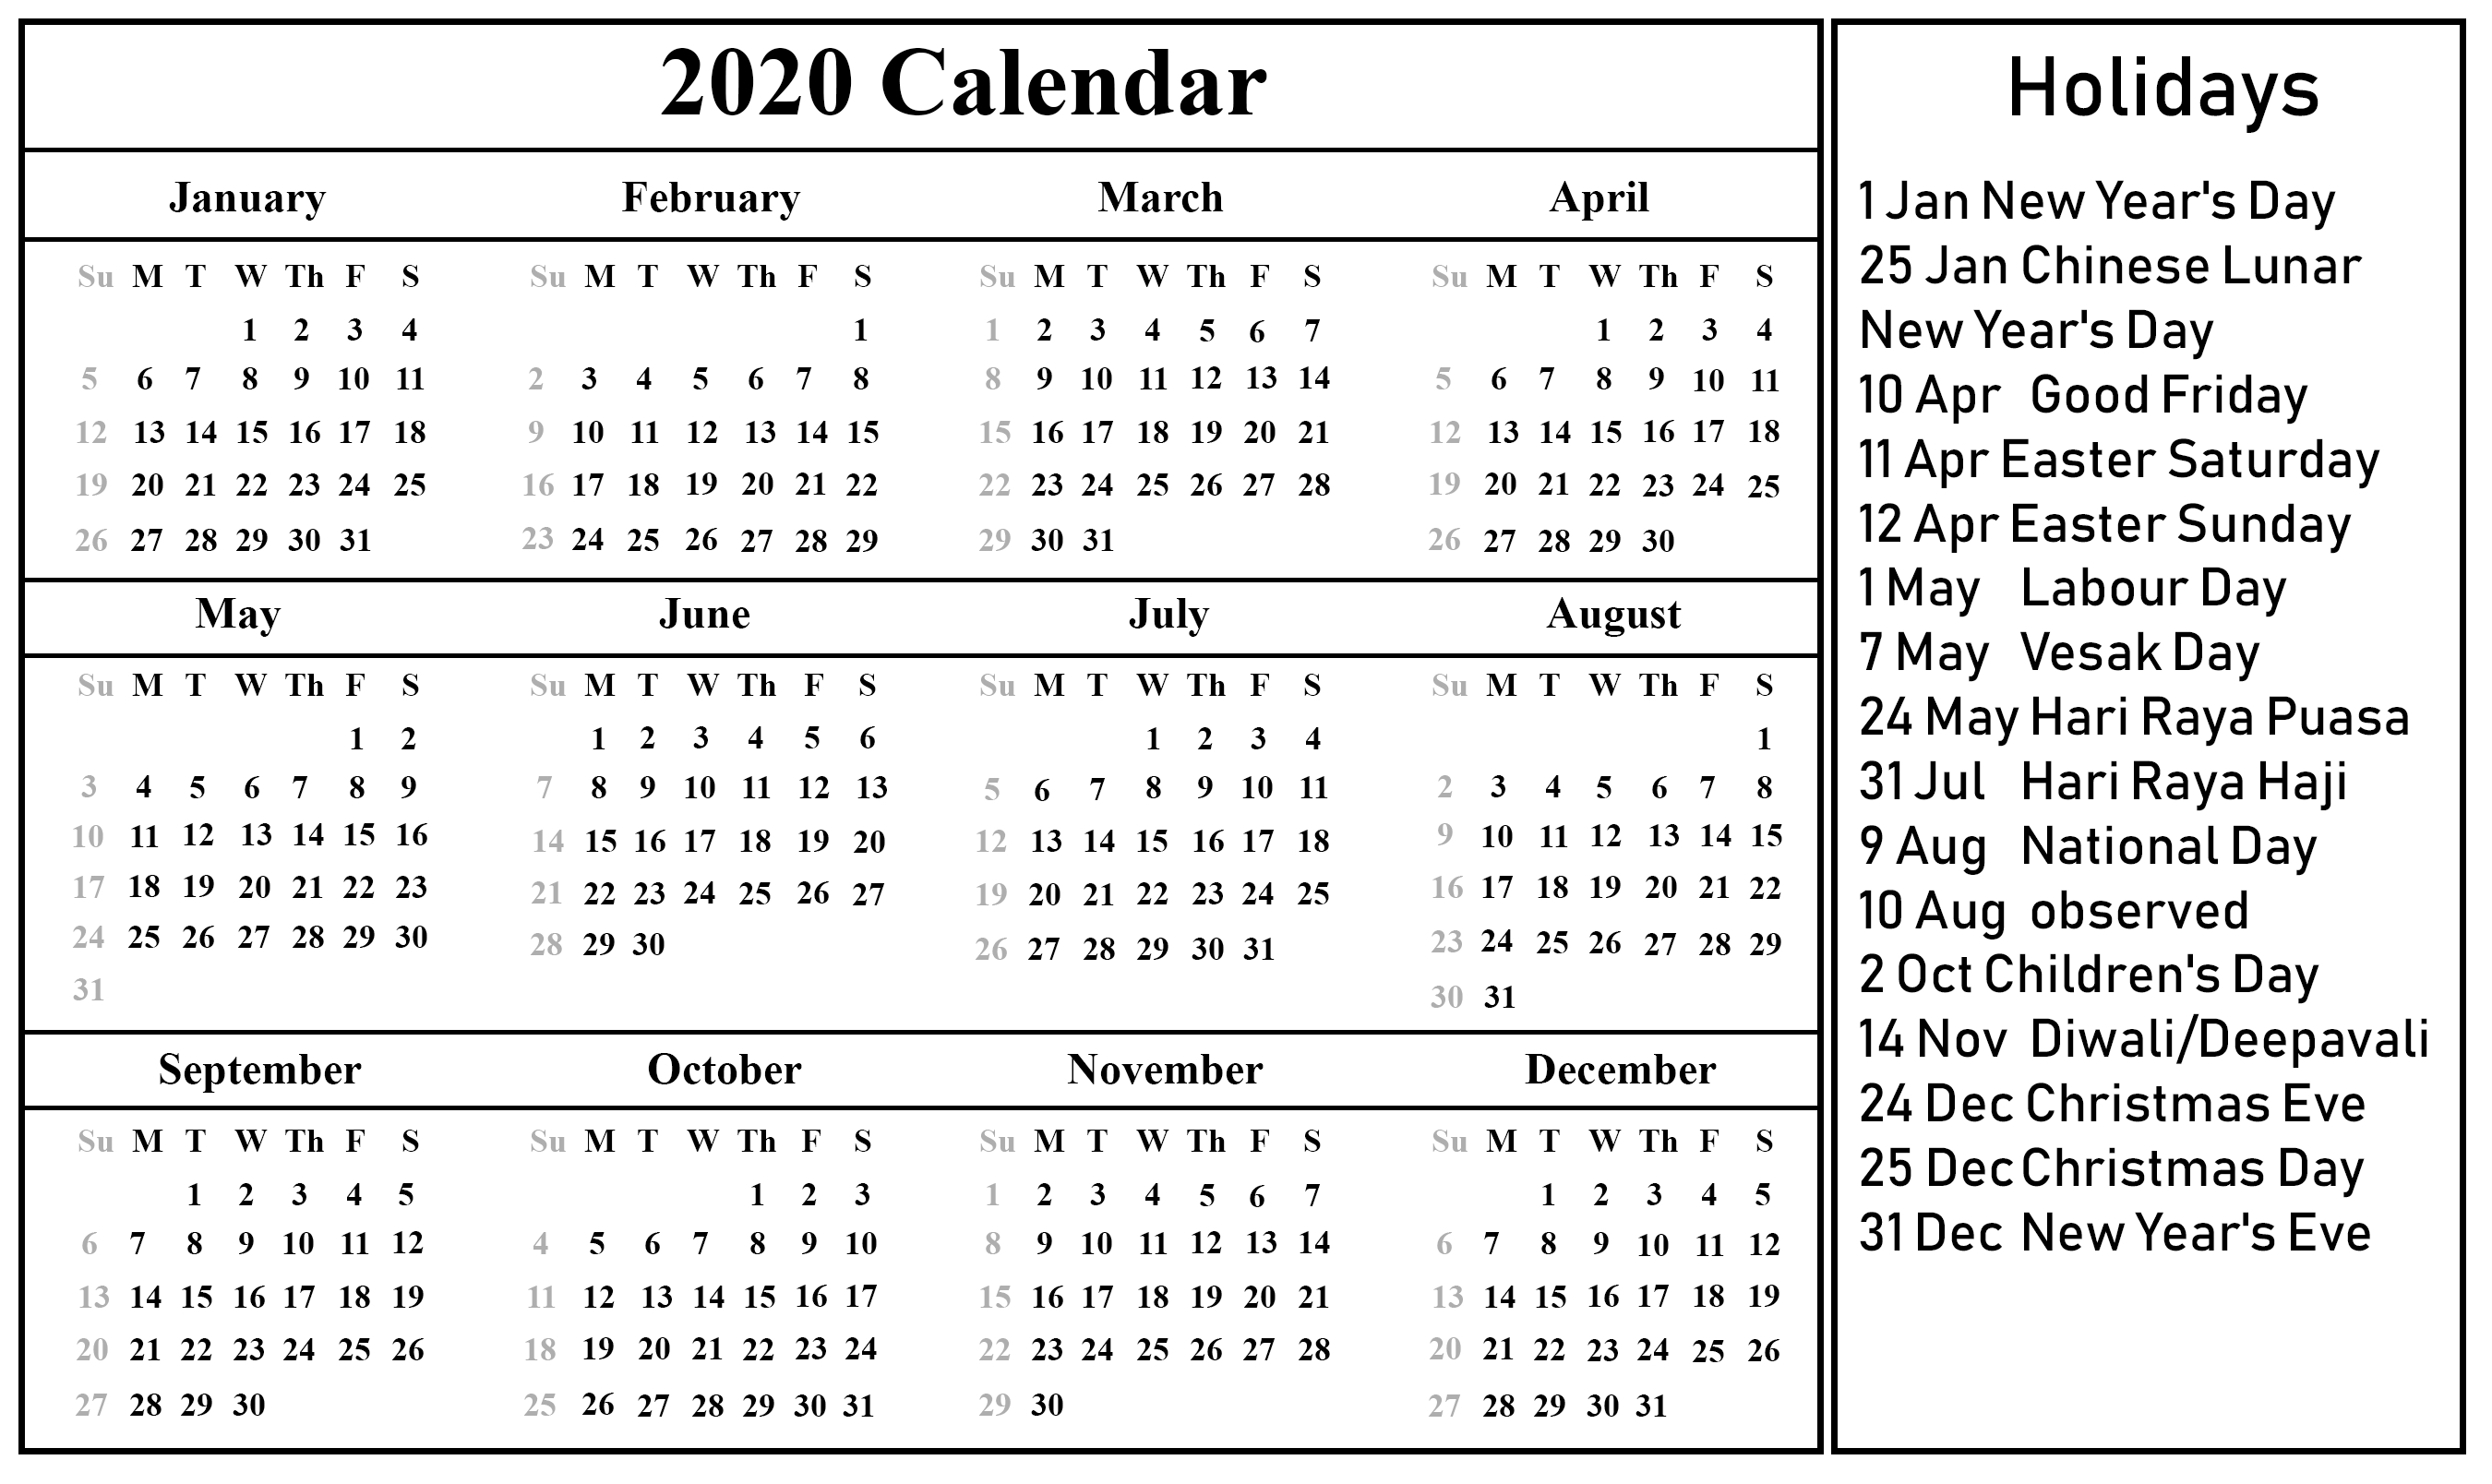 Full List Of March Holidays 2020 Calendar With Festival-2020 List Of Holidays Printable